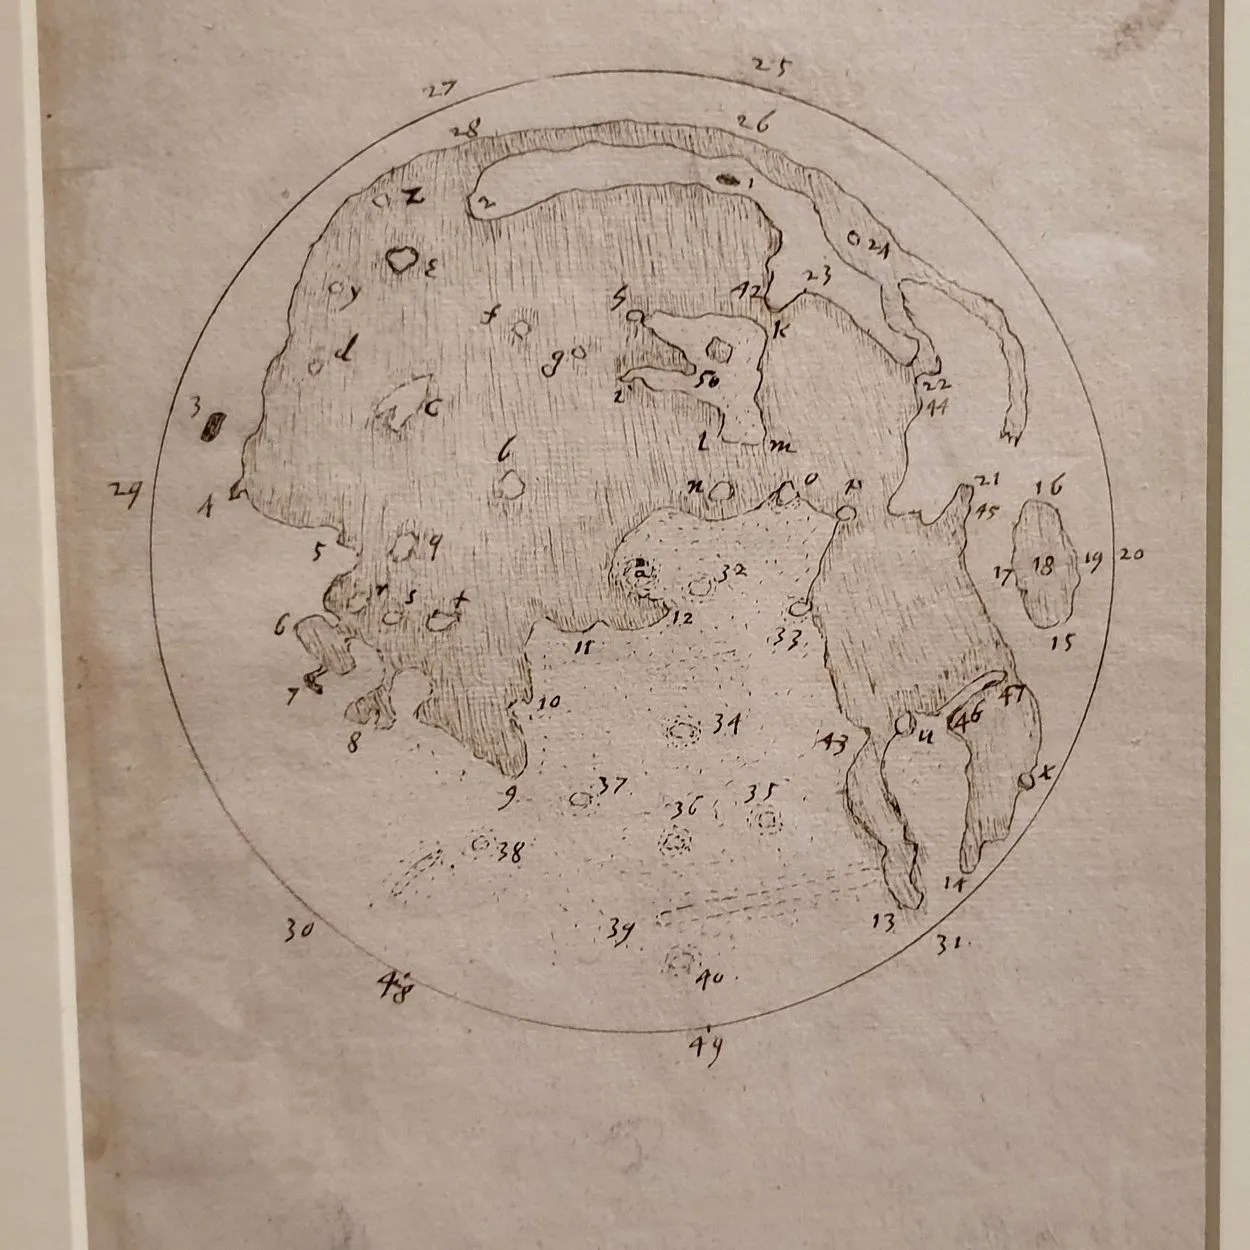 Earliest map of the moon drawn using a telescope. Pencil drawing of the moon